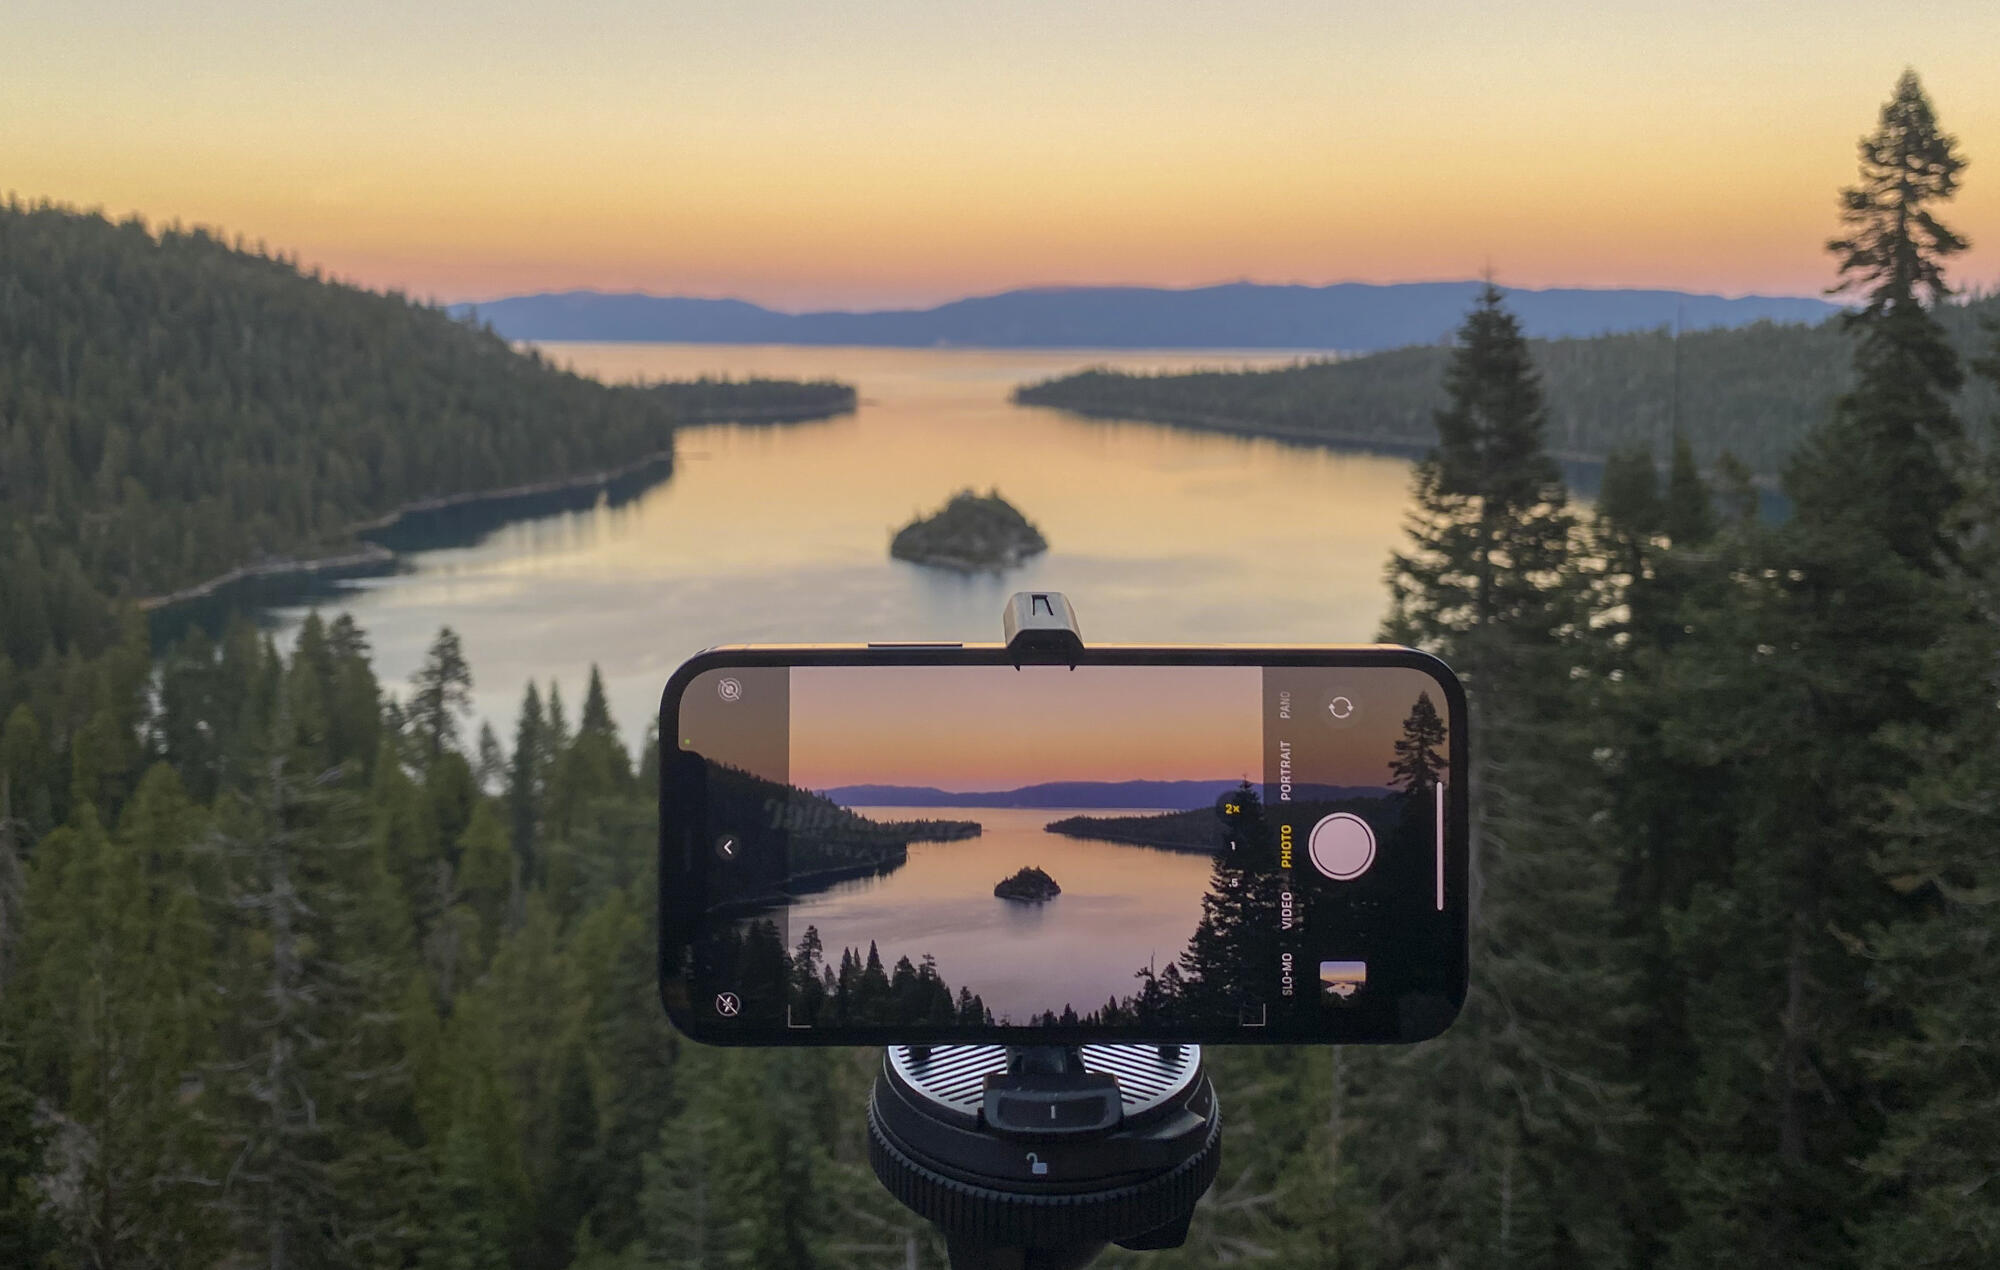 Shooting with the iPhone 12 Pro above Emerald Bay in Lake Tahoe, California.